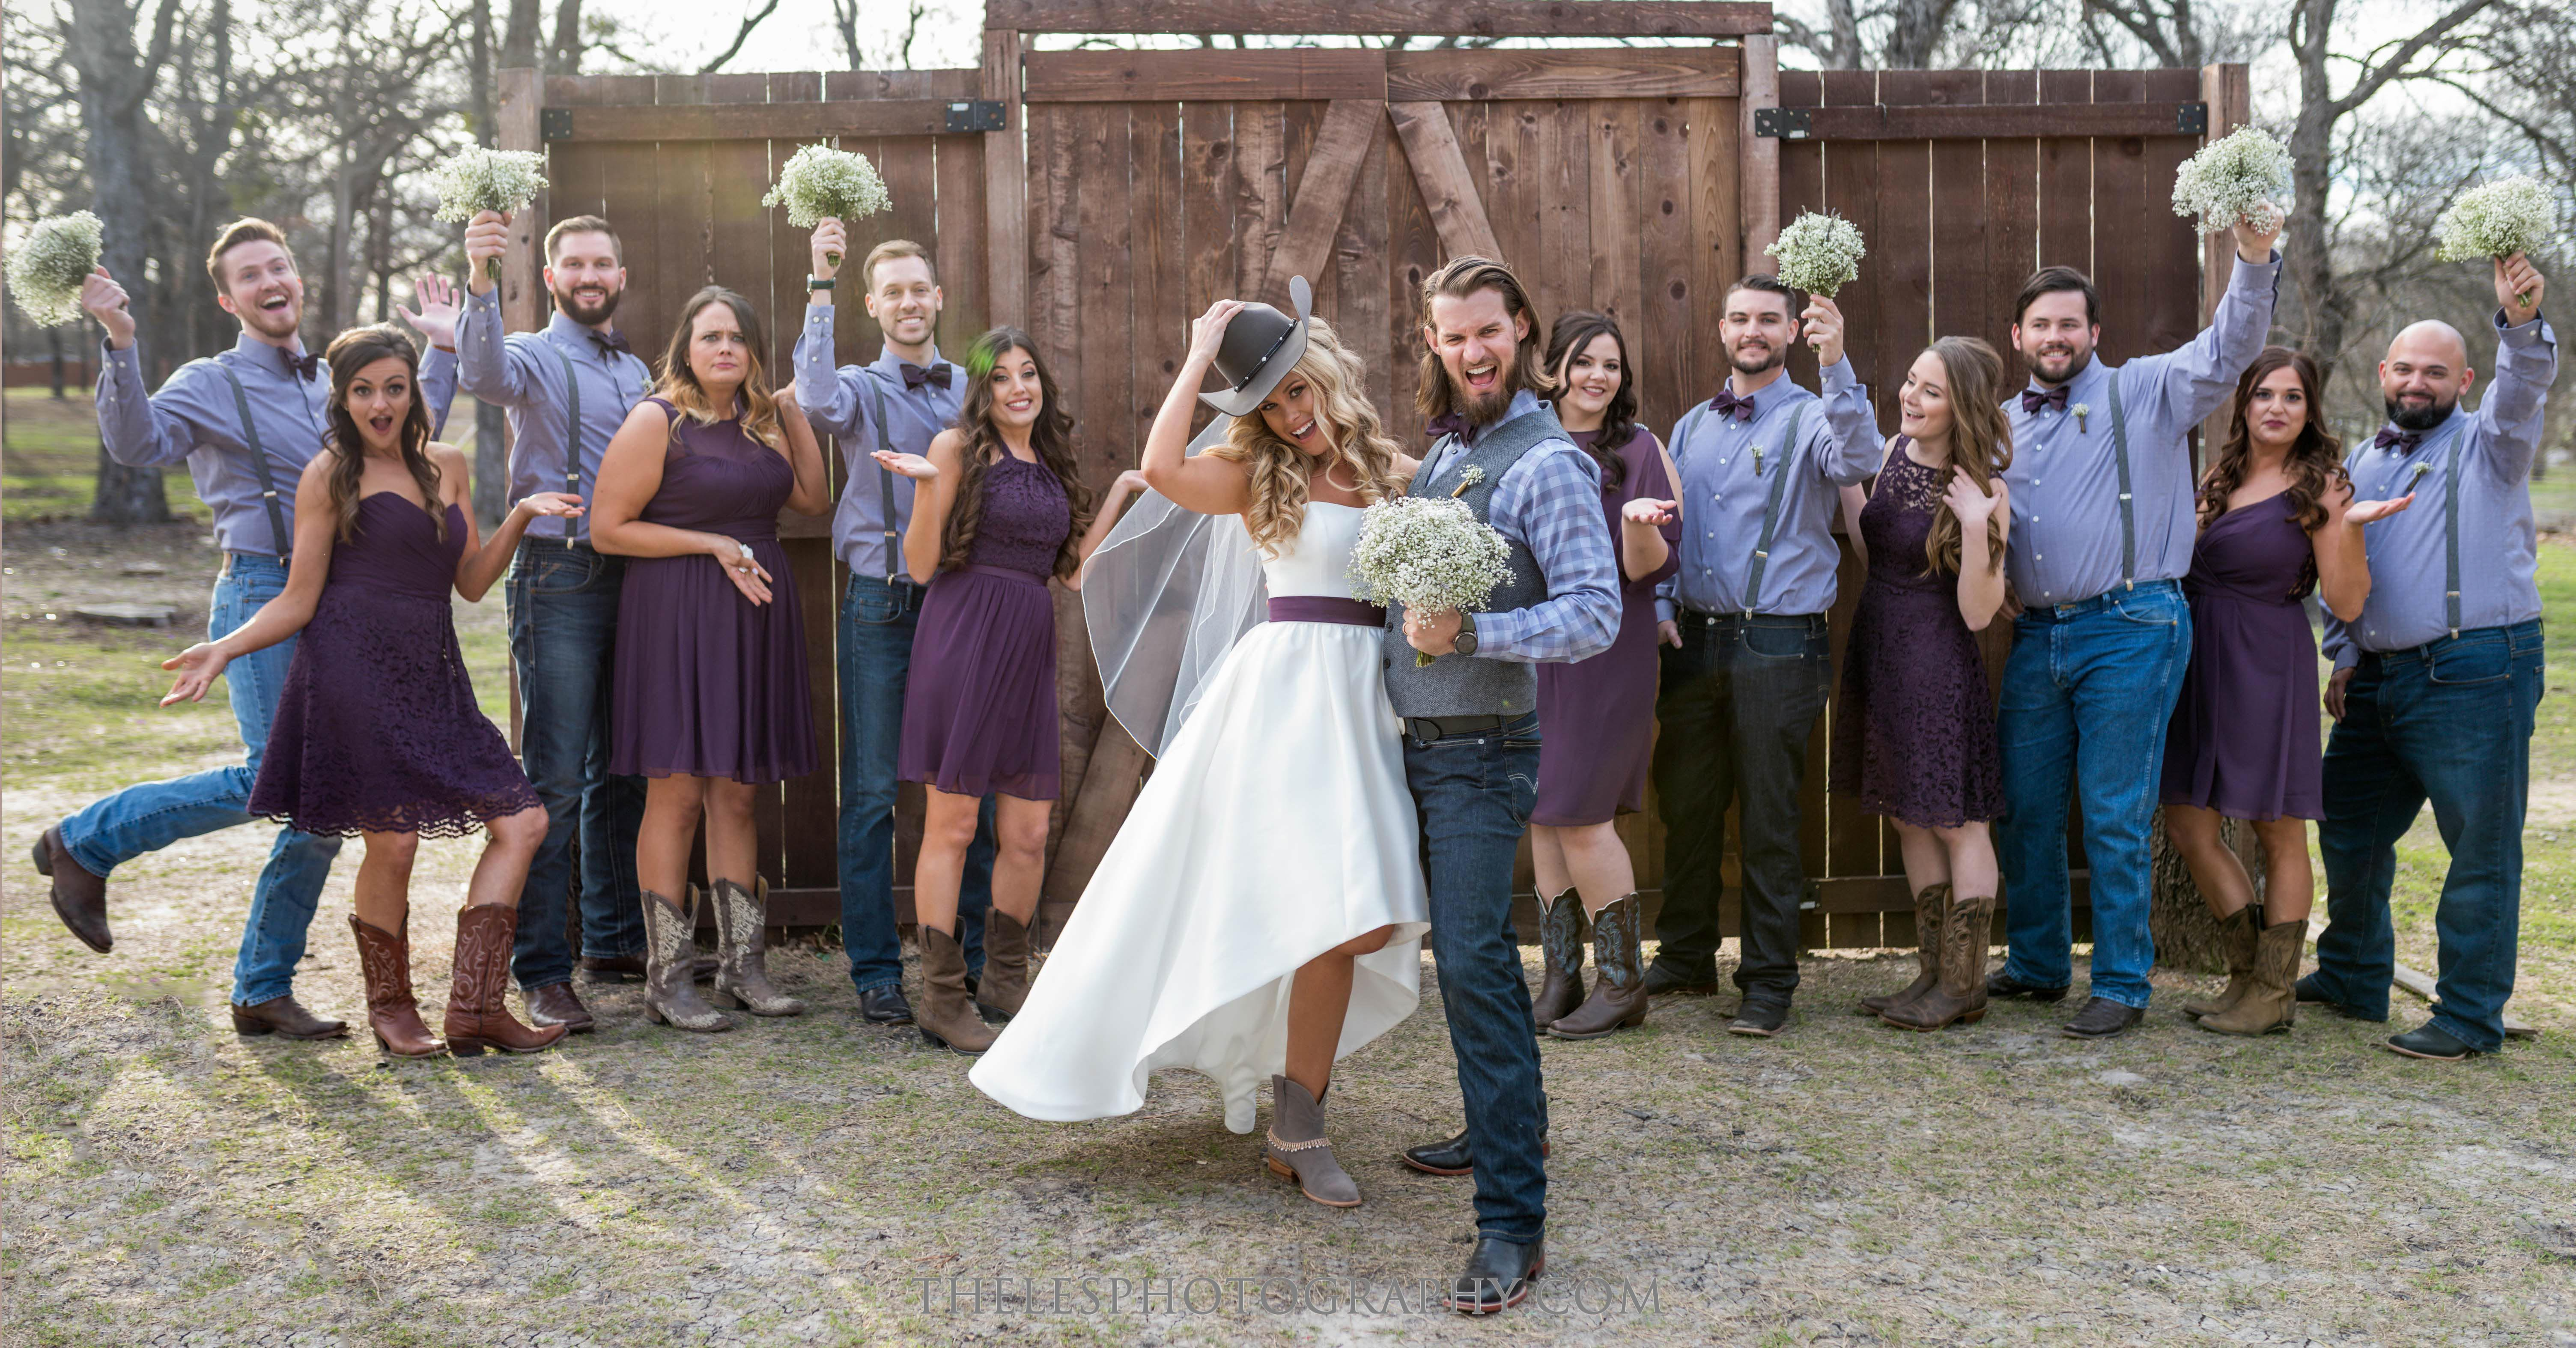 081 Dallas Wedding Photography - Photographer - The Les Photography - Fort Country Memories Wedding